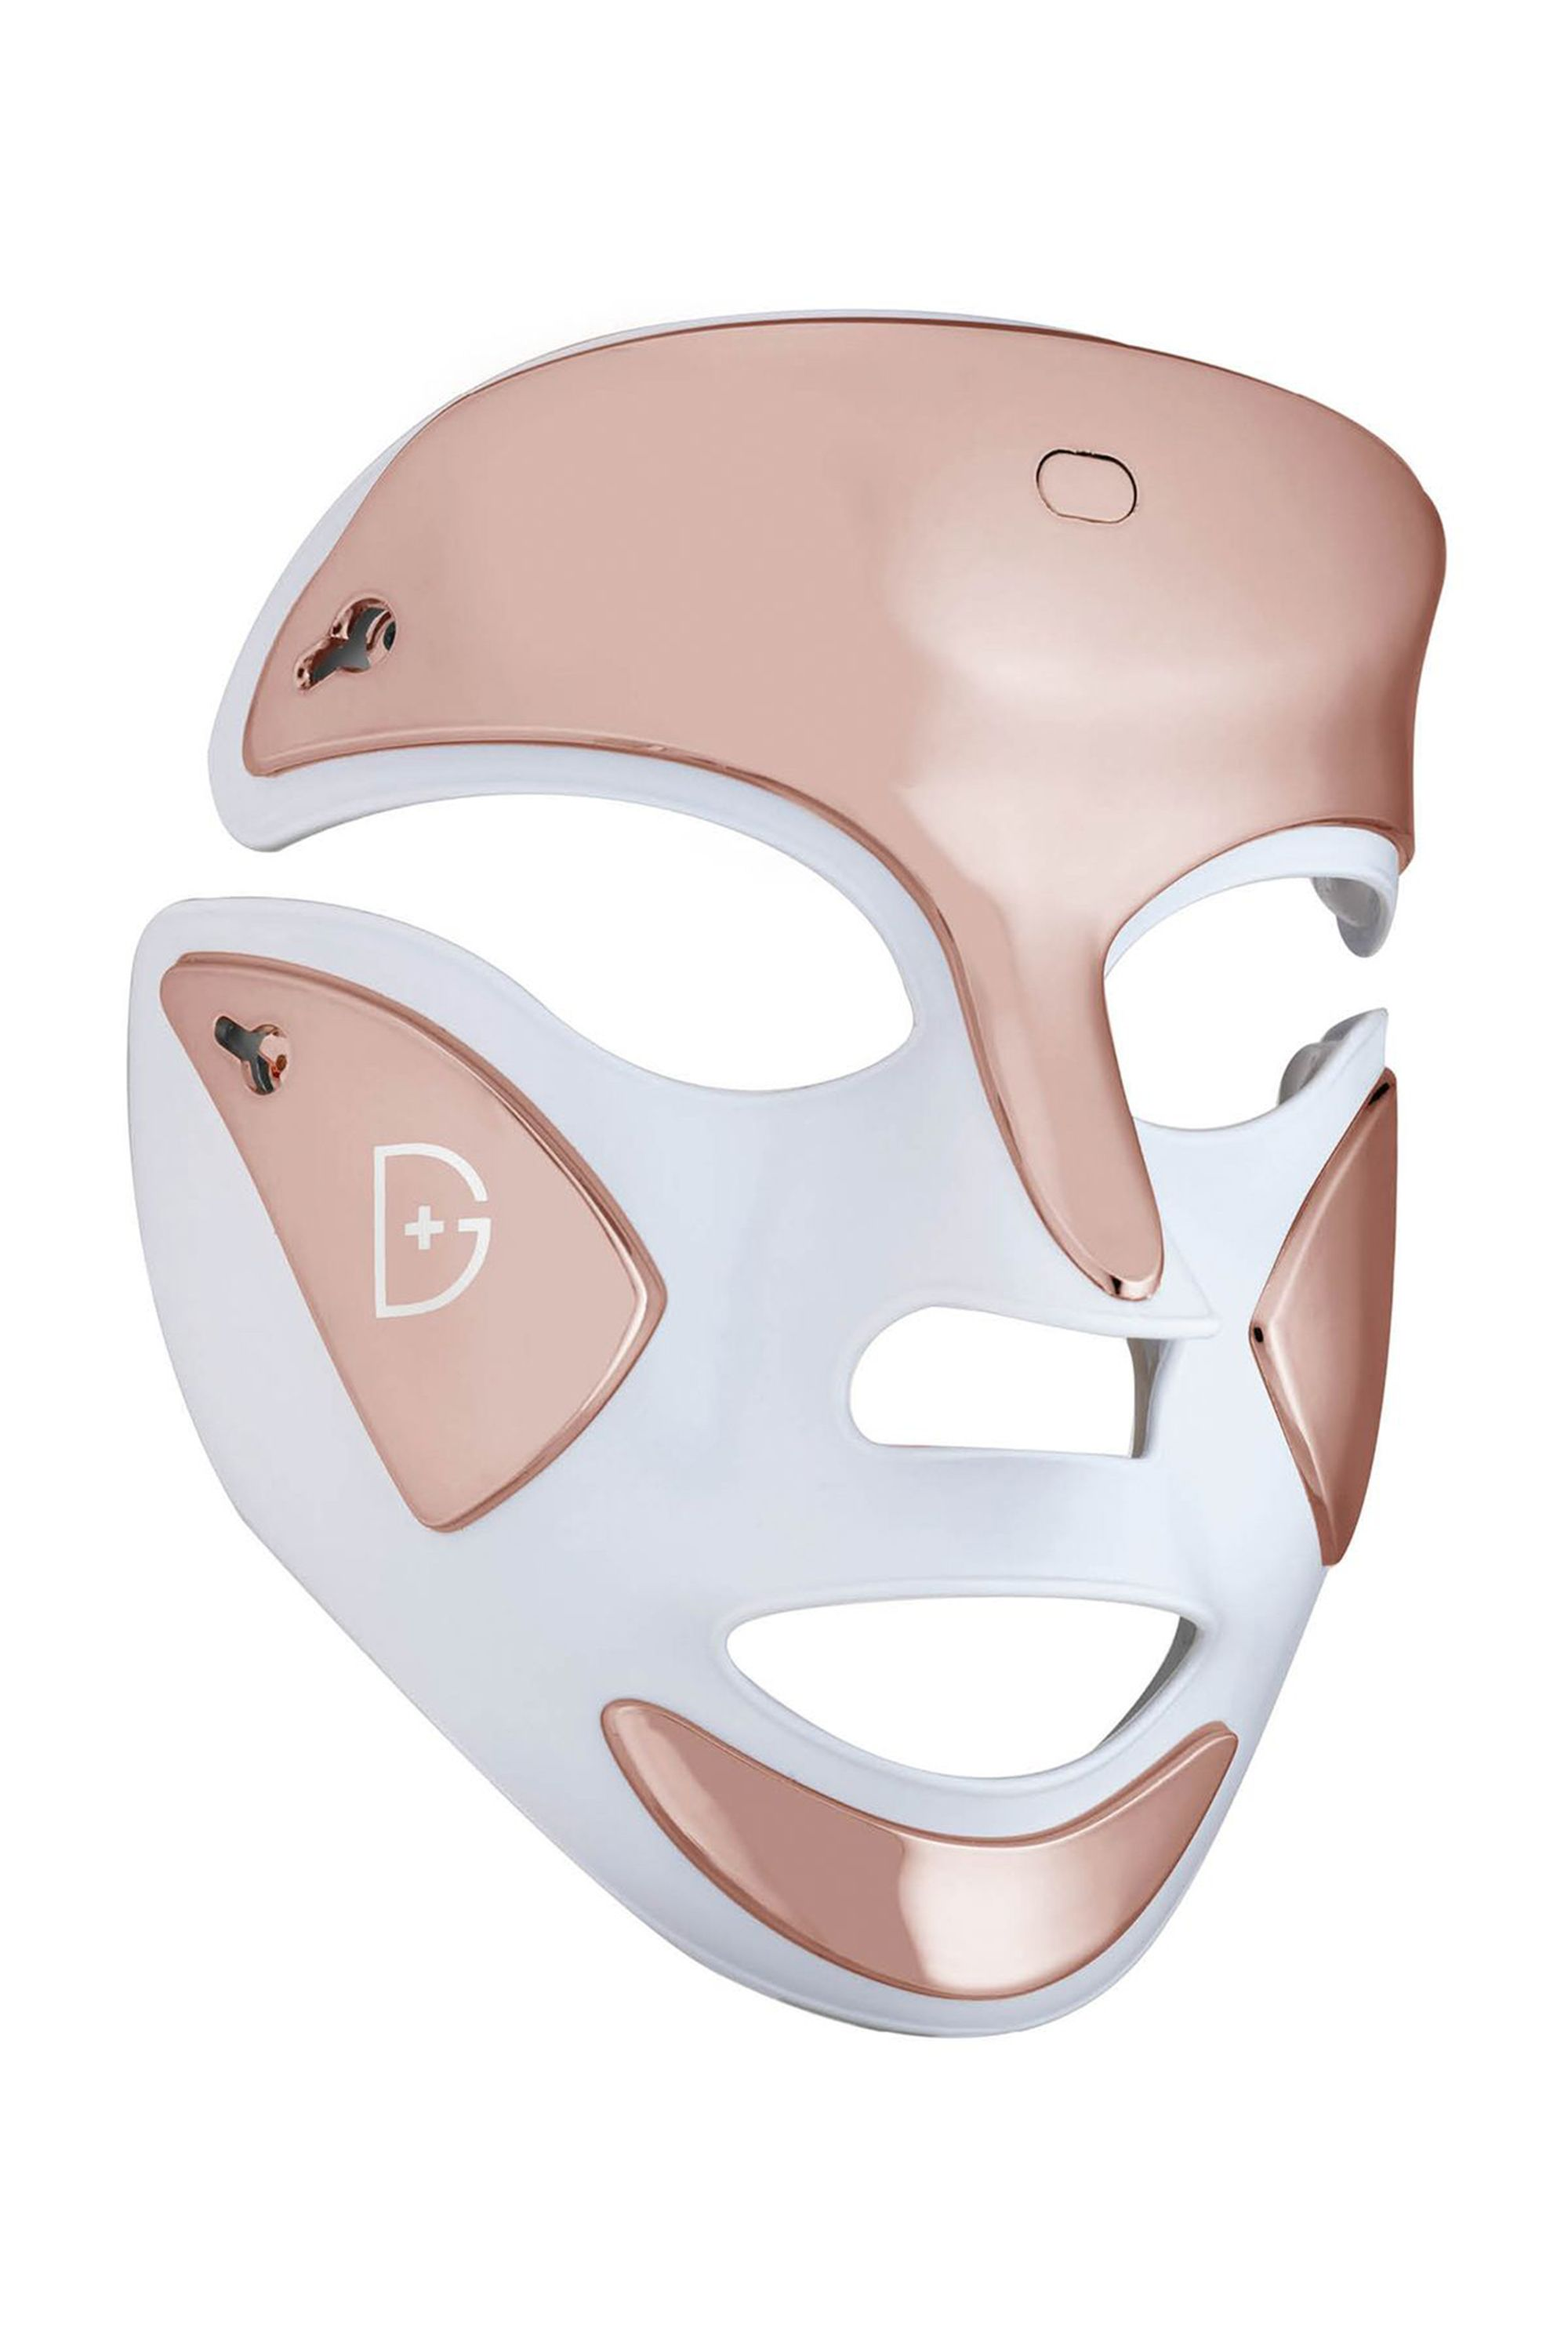 Dr Dennis Gross therapy mask